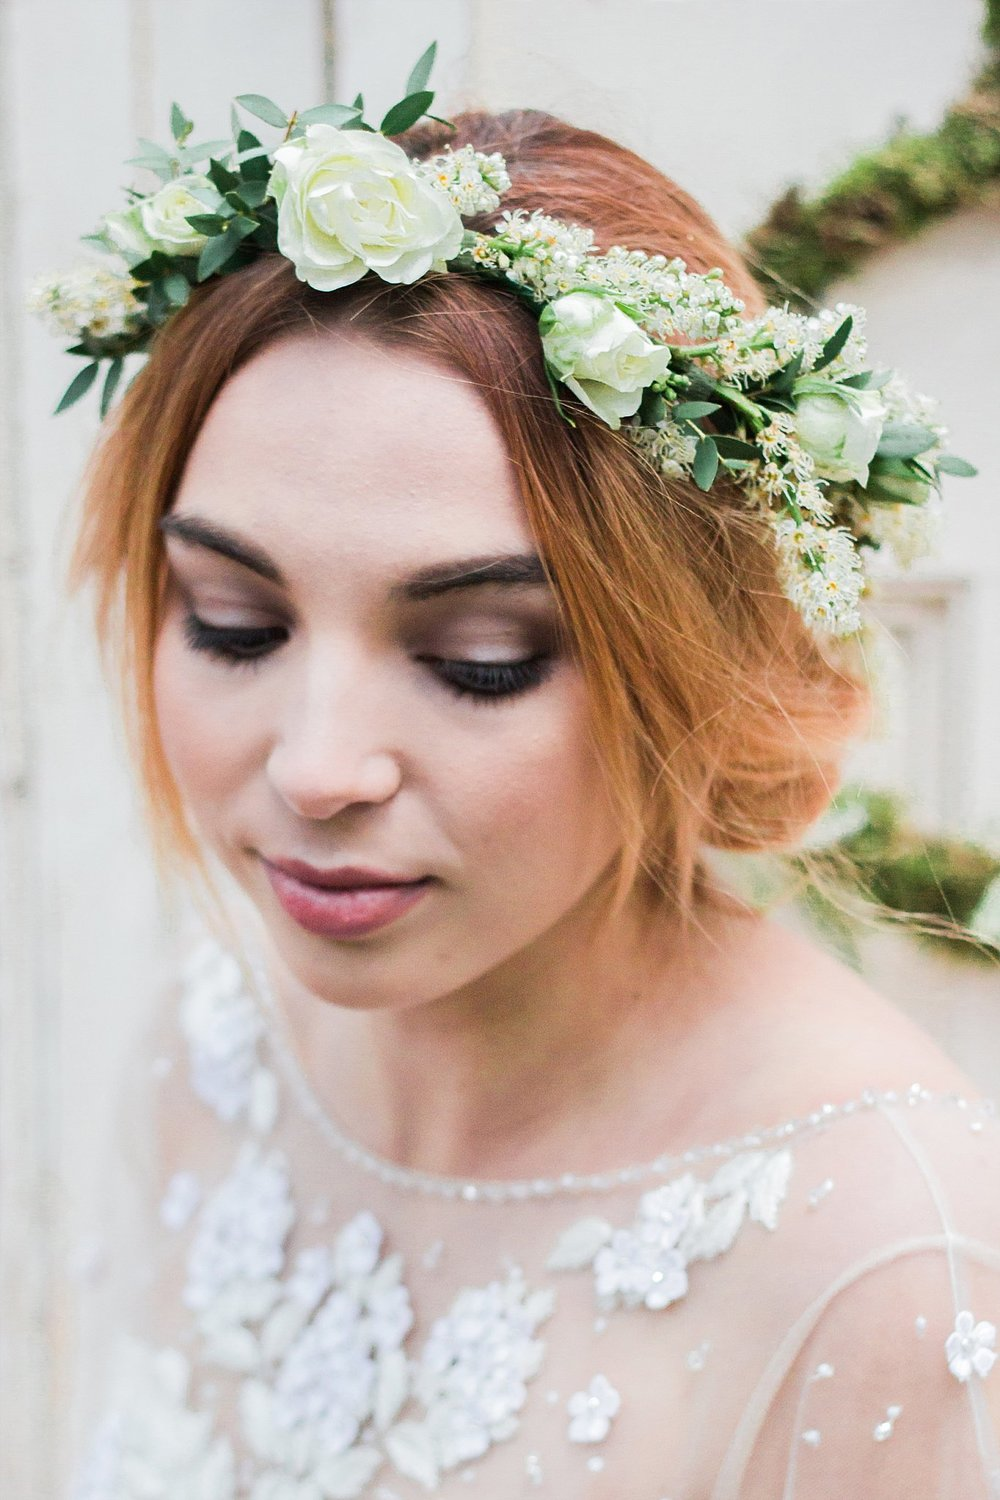 Vintage Amy Wedding Styling-Whimsical Woodland Wedding Inspiration Kent-Vintage Flower Crown